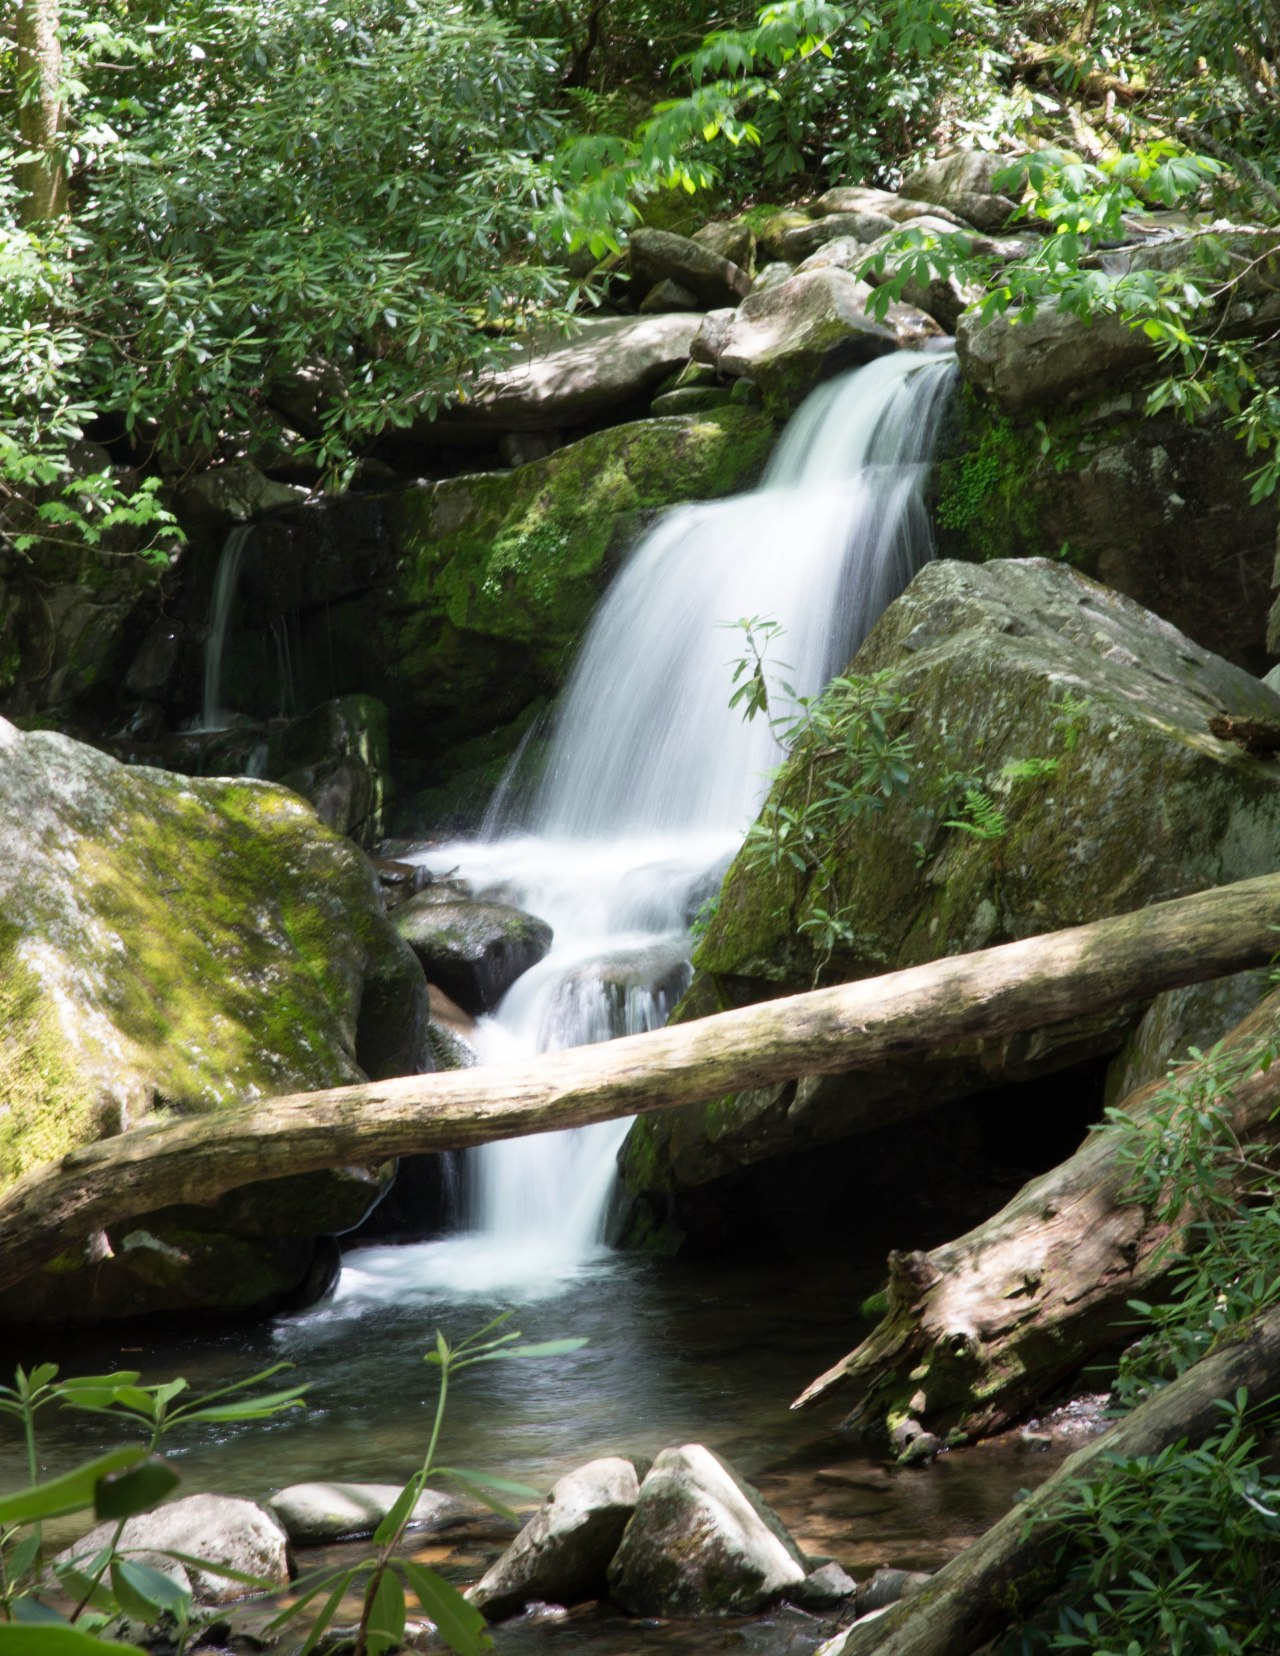 The Great Smoky Mountains – Roaring Fork Motor Trail